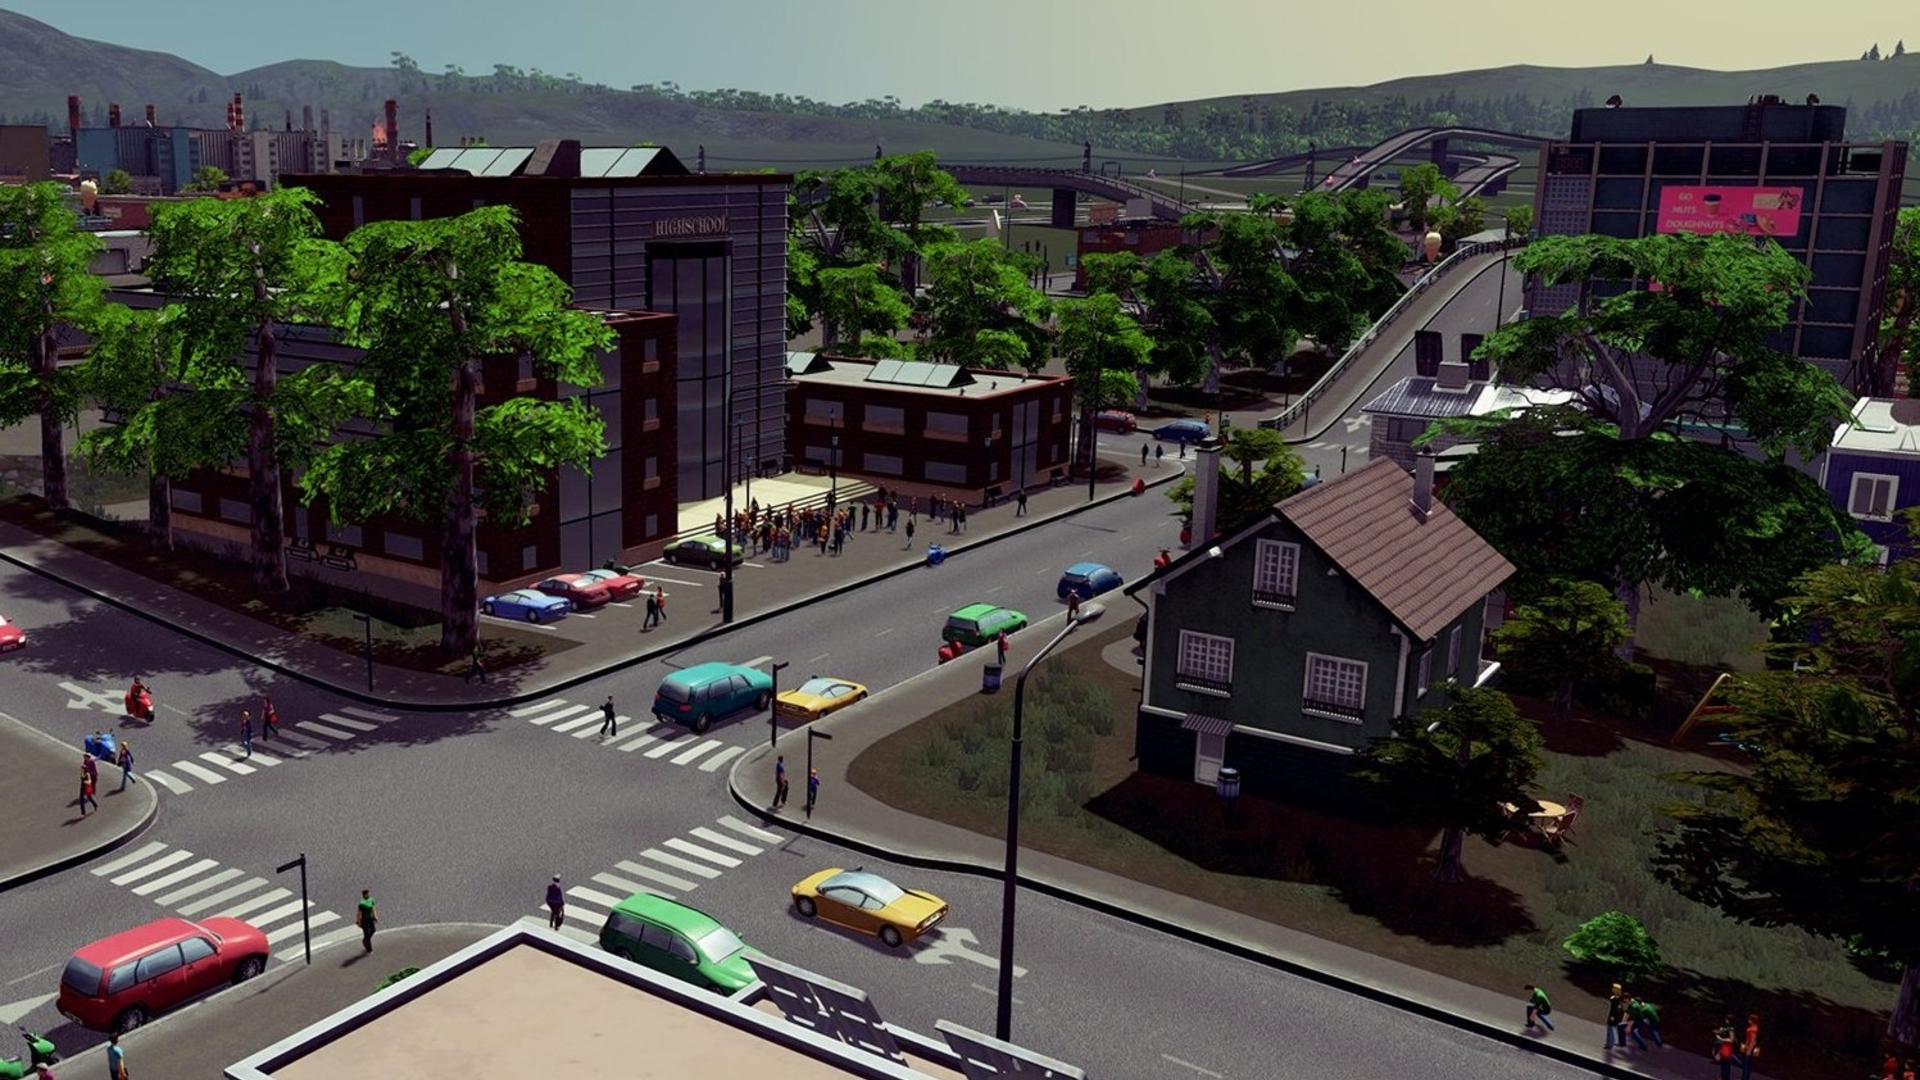 Cities: Skylines soars past 1m sales mark